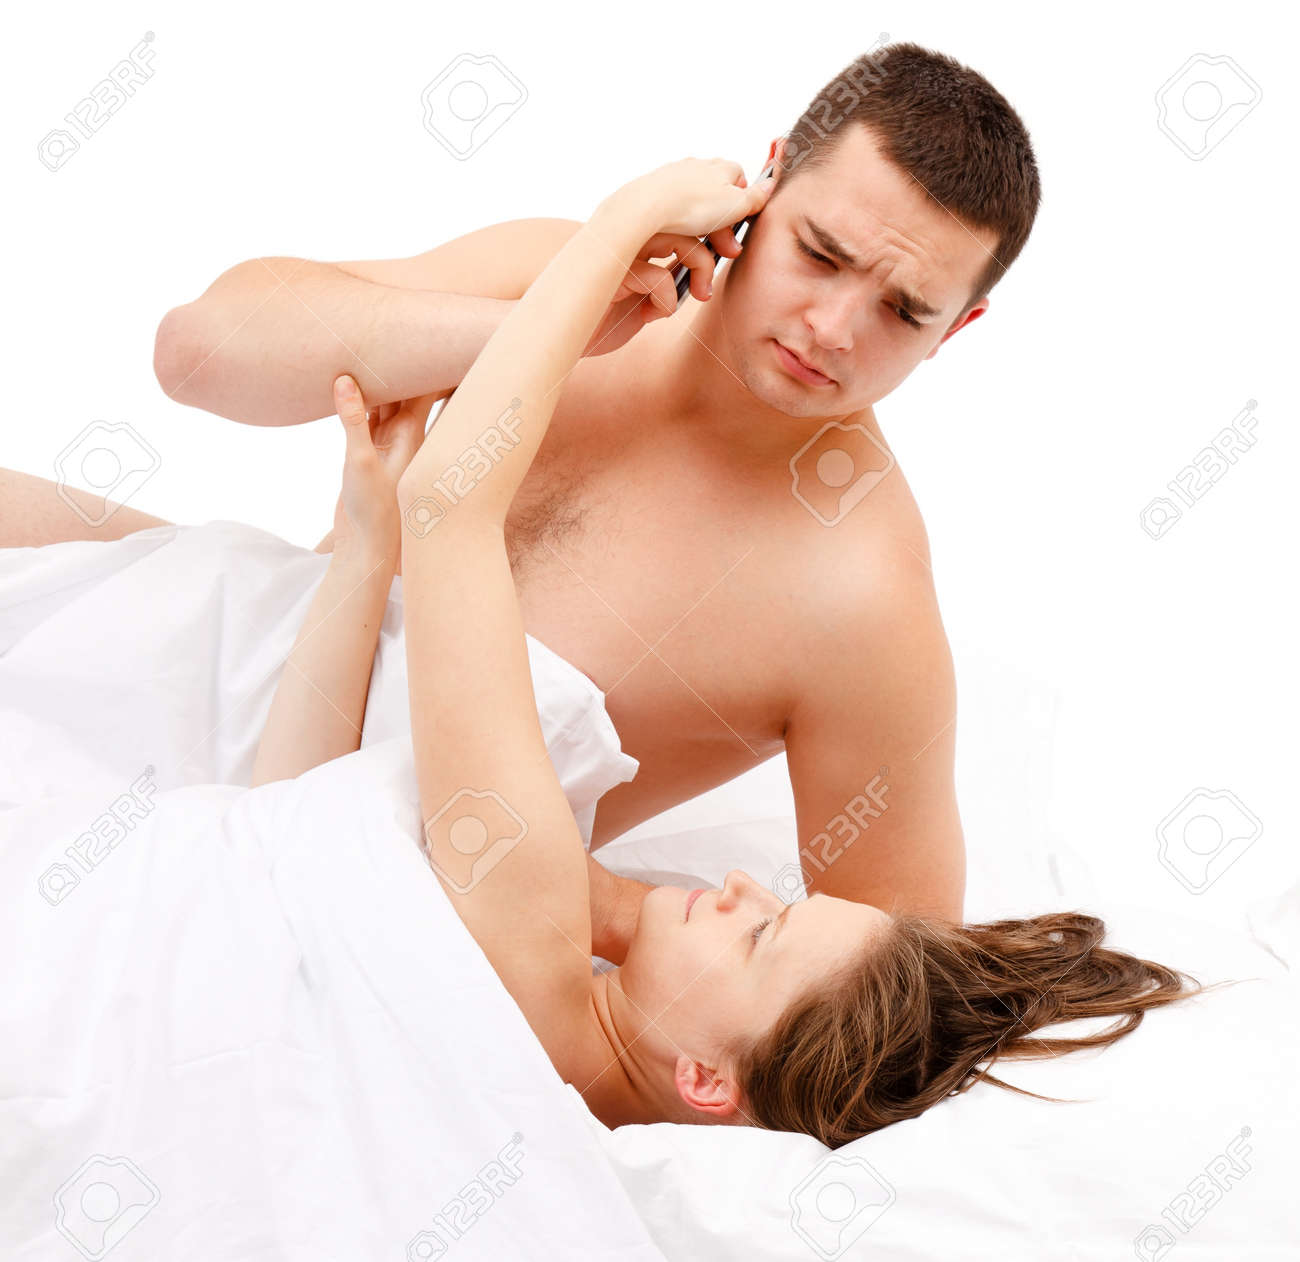 Naked couple in bed, woman trying to take phone from man while he's still speaking Stock Photo - 10658816